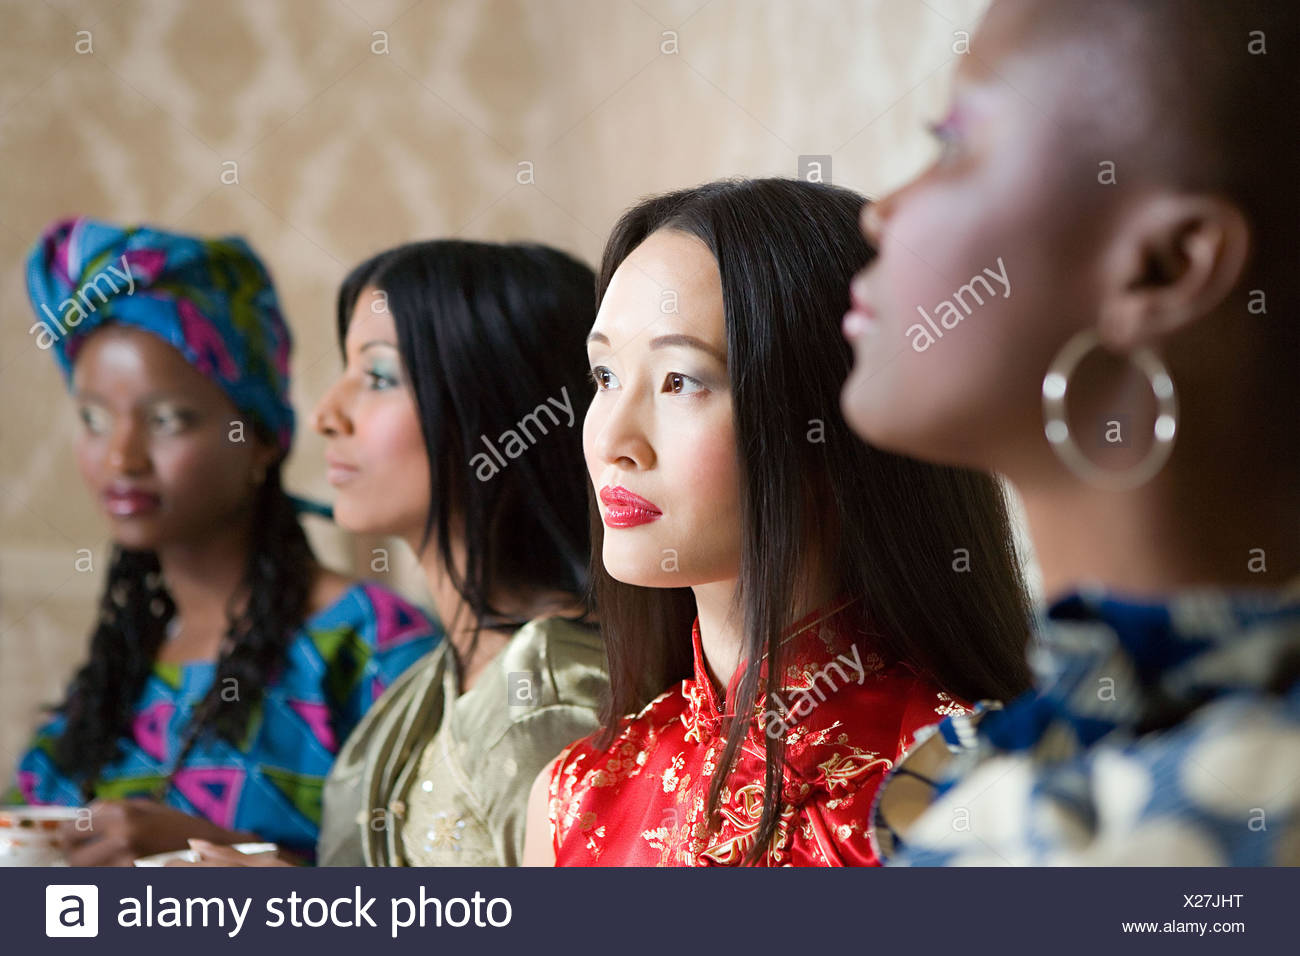 Four women in traditional clothing - Stock Image